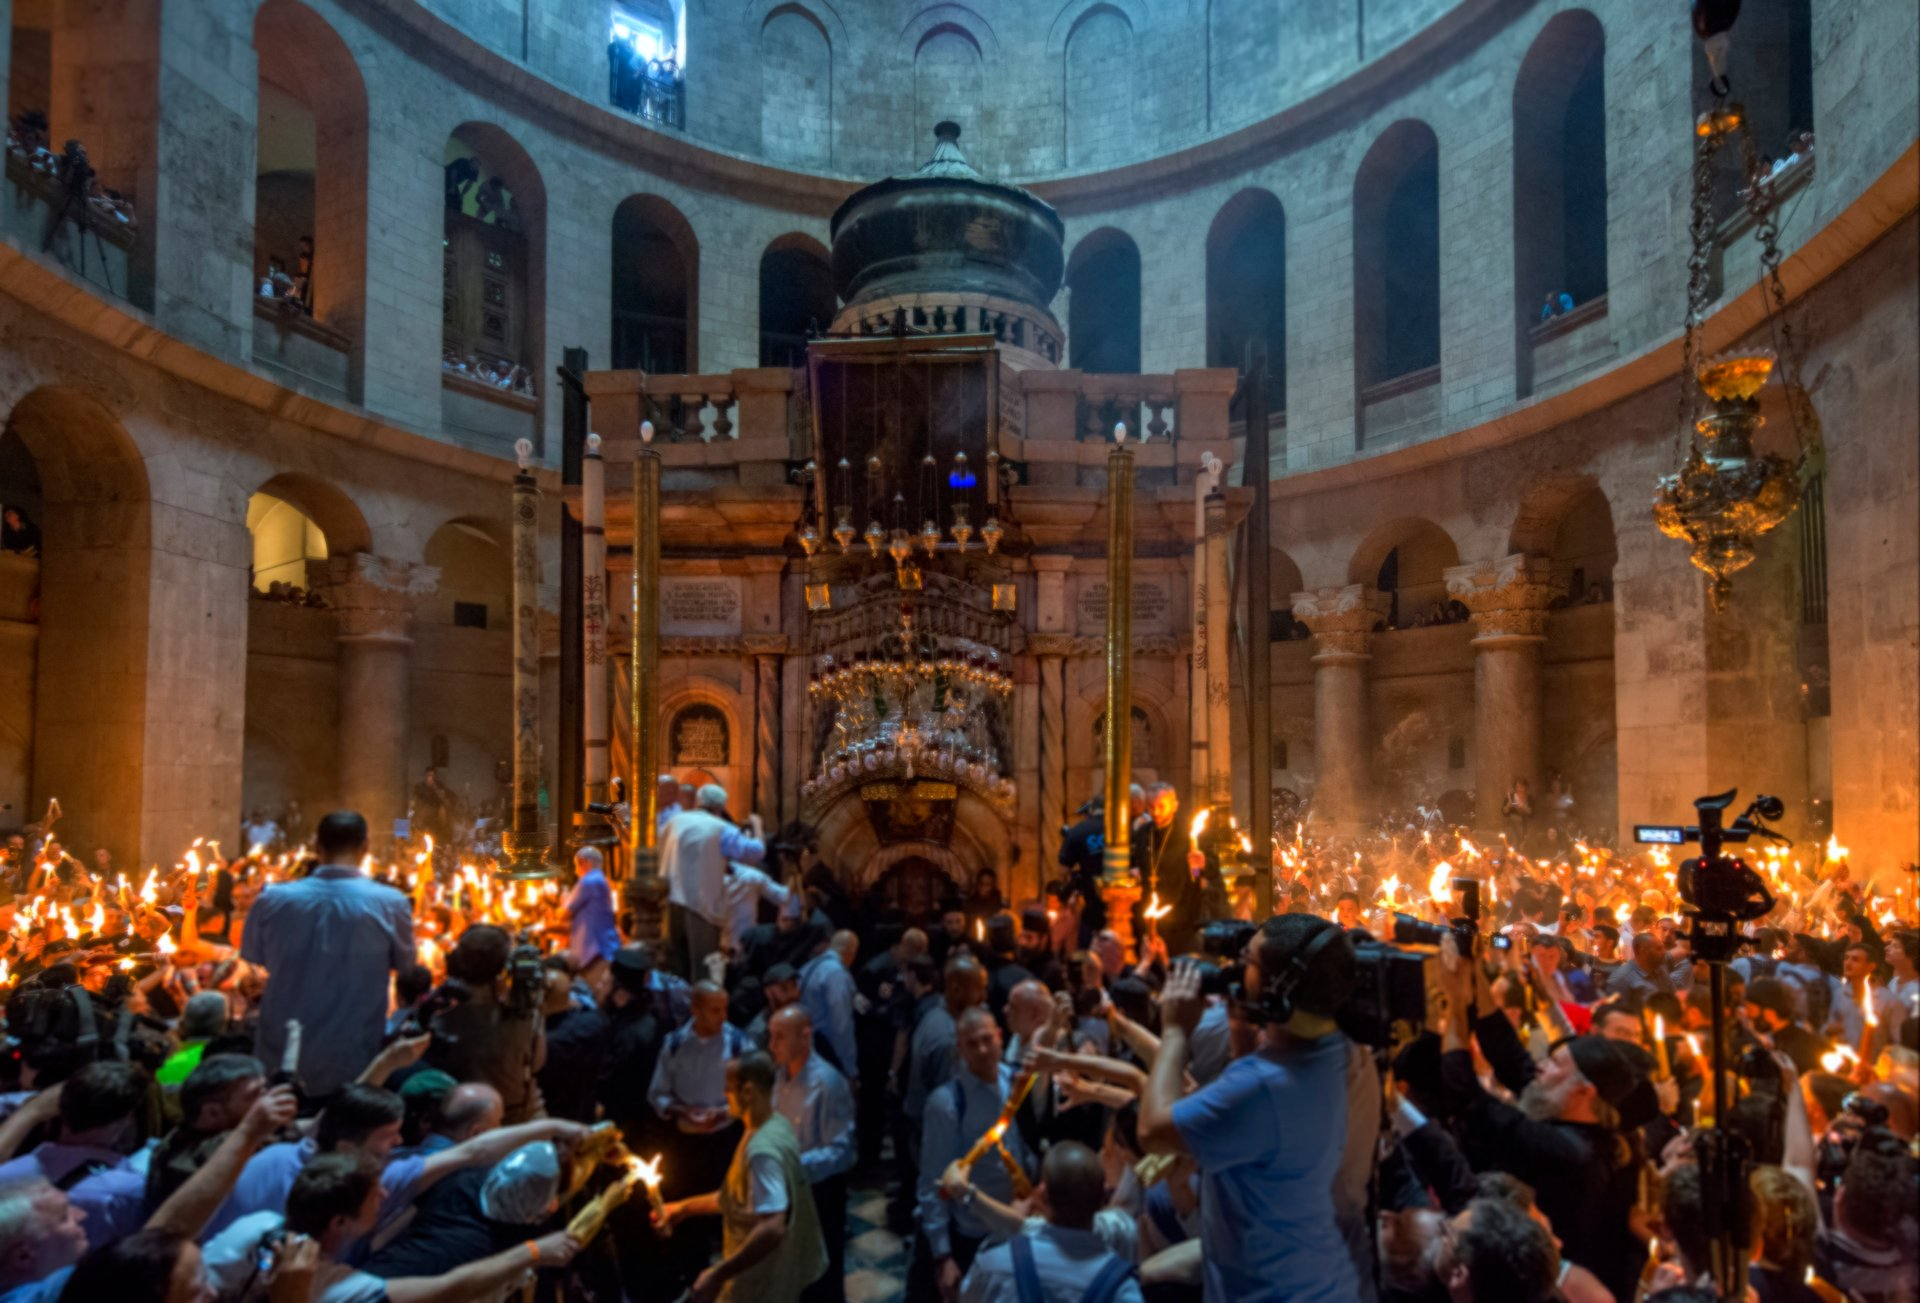 Holy Light Christian Feast Ceremony at the Church of the Holy Sepulchre 2020